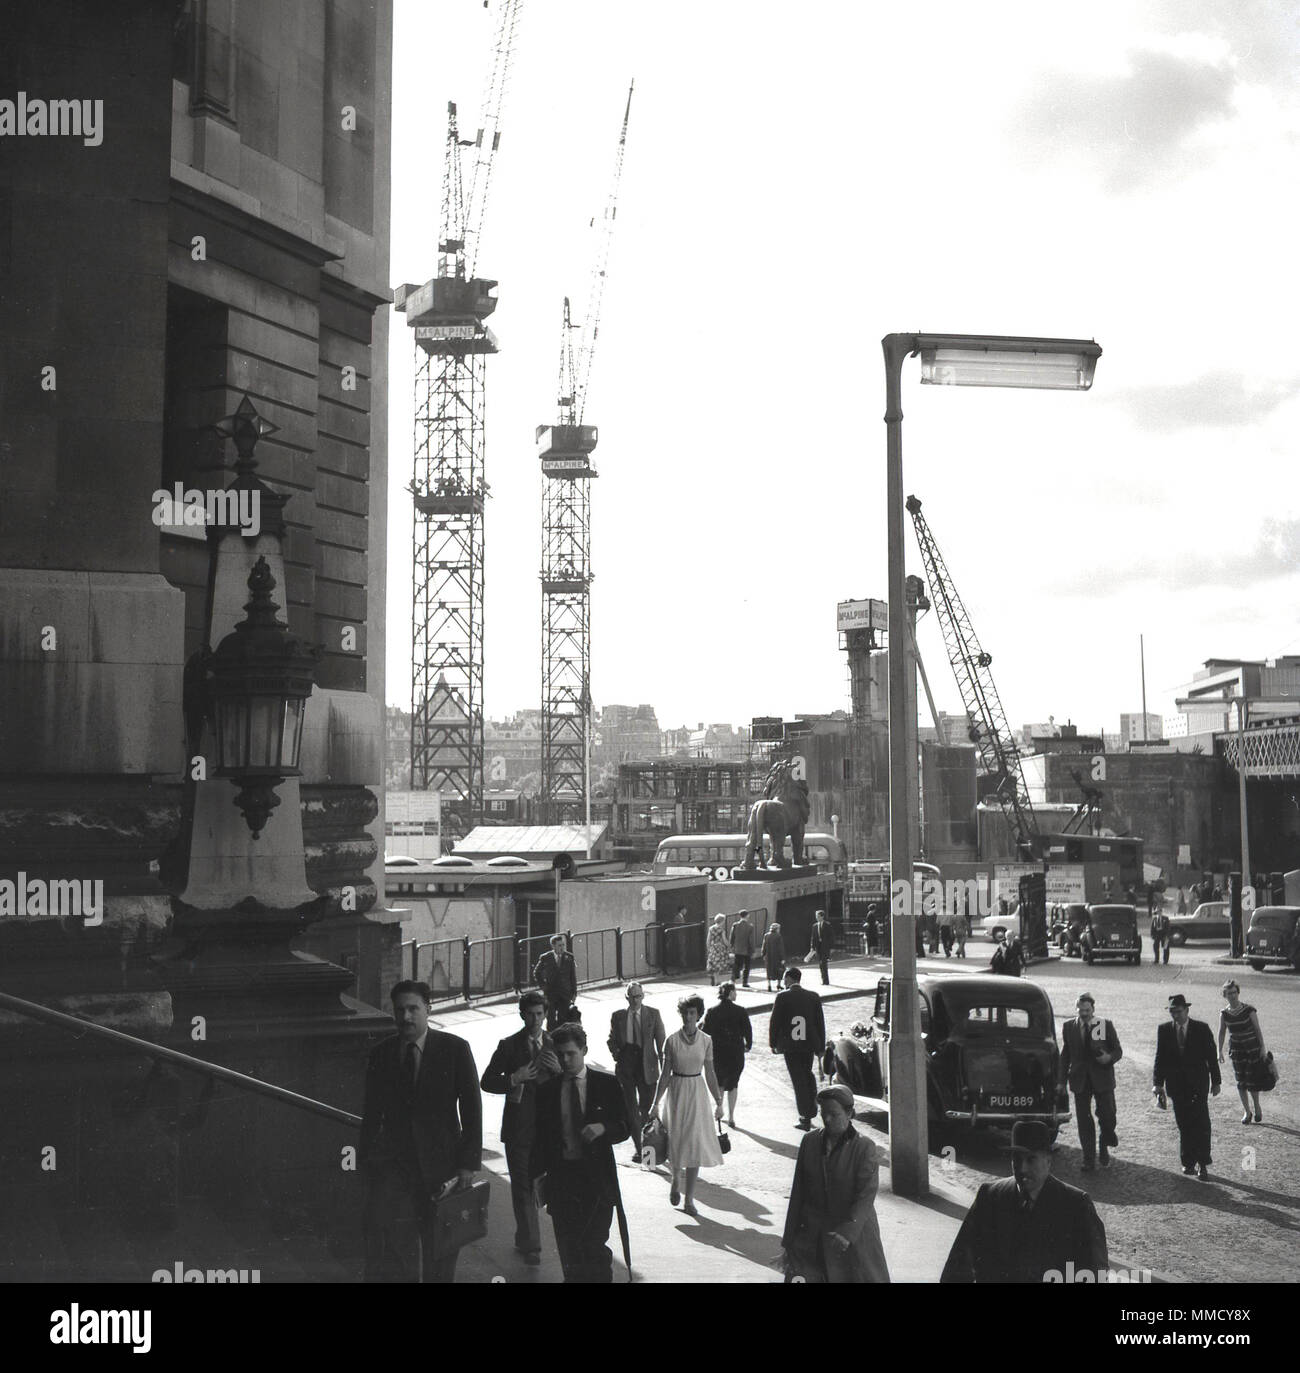 1960s, rail commuters walking towards waterloo railway station, on the south bank, London, England, UK. A crane can be seen on the foreground, as massive construction or building works were taking pace at this time on the South Bank of the River Thames, including the building of the Shell Centre, an enormous office tower block. - Stock Image